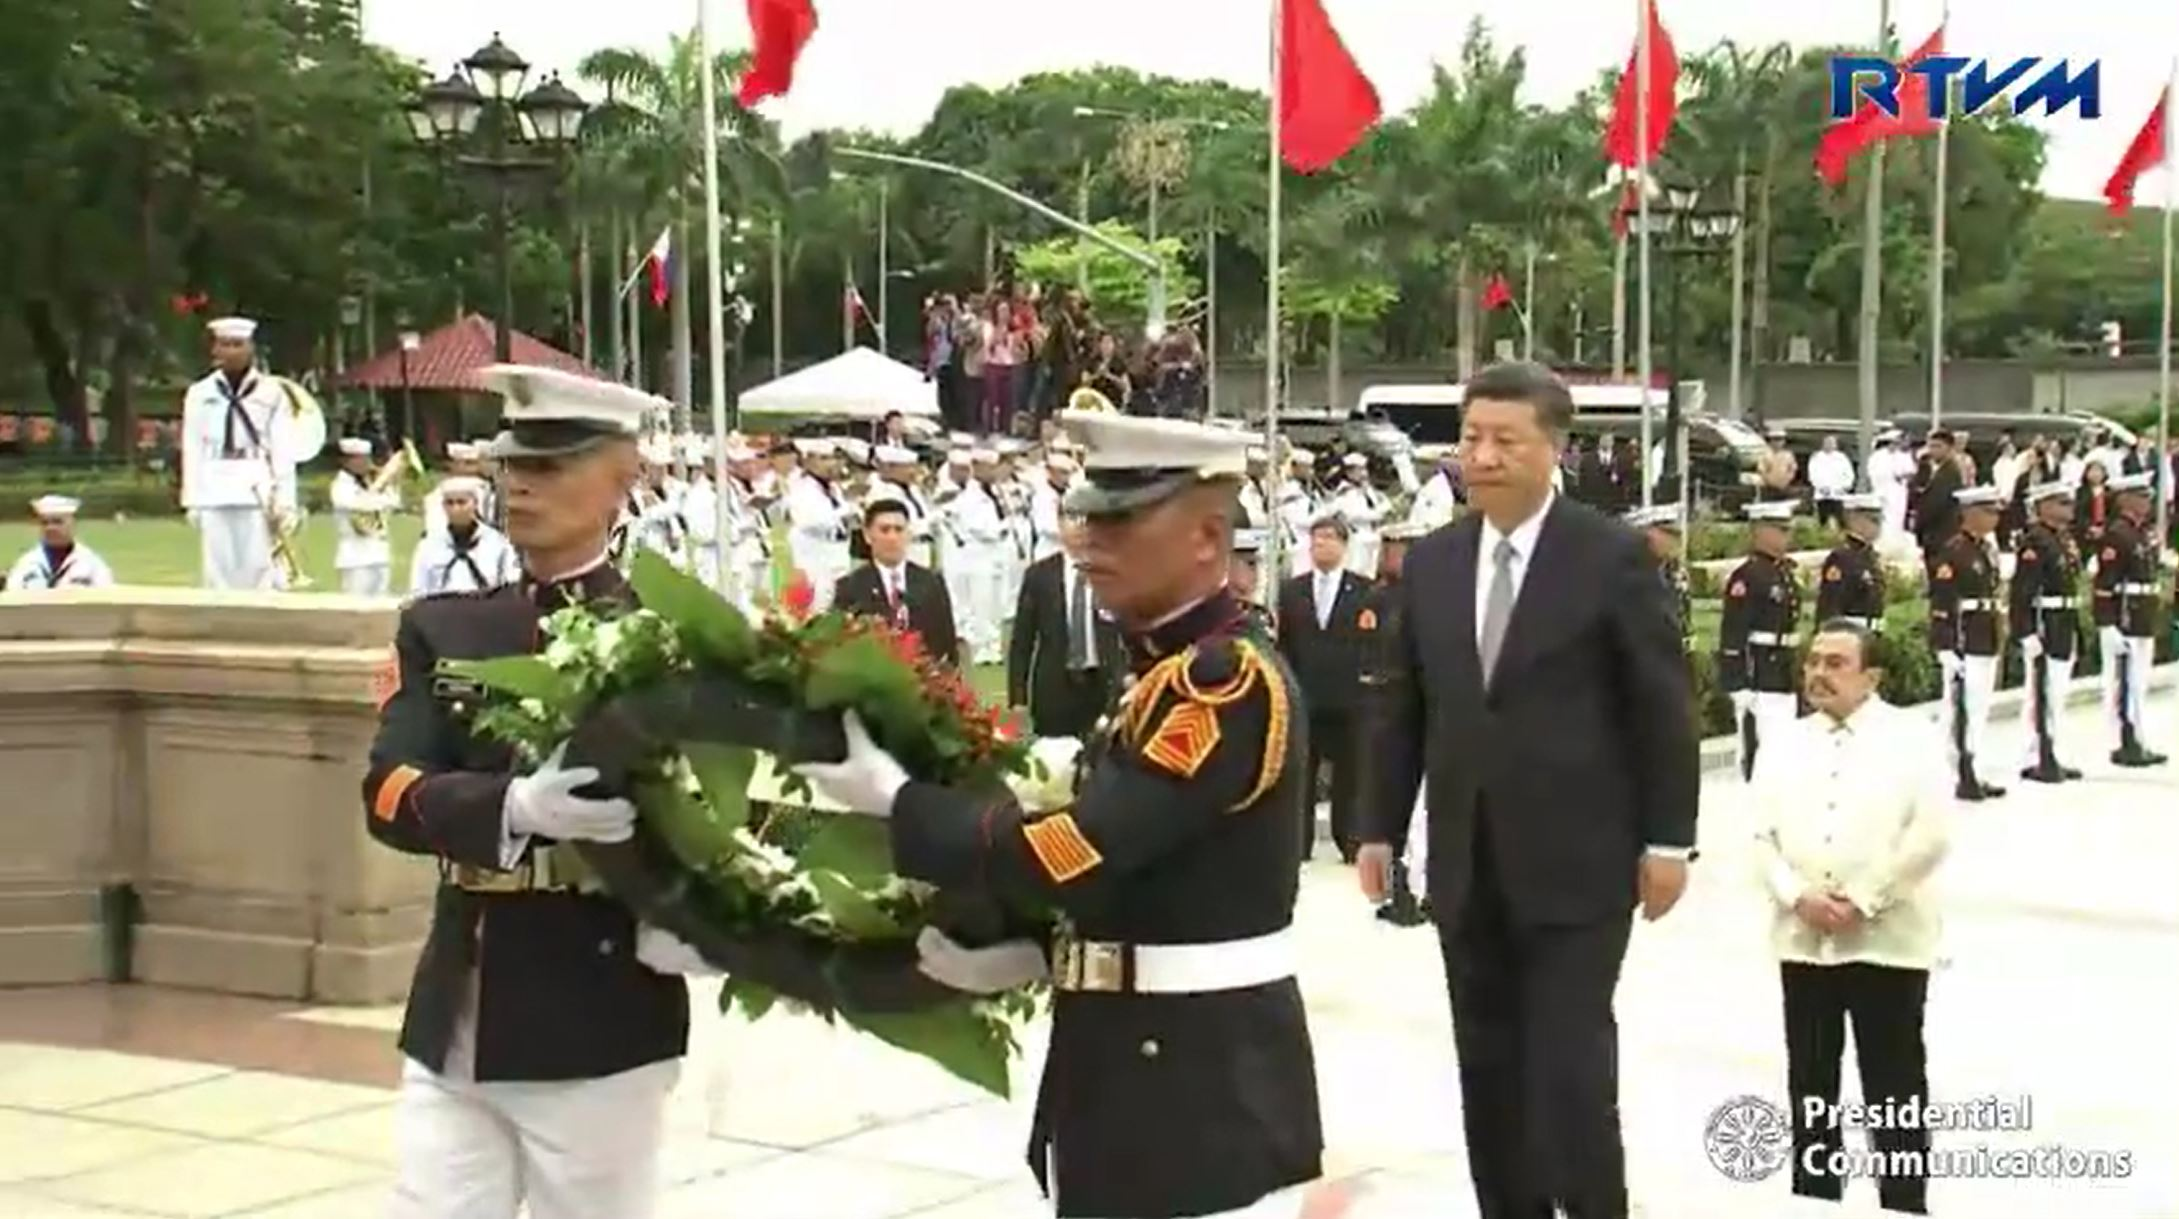 News in photos: China's President Xi starts state visit with wreath-laying at Rizal Park monument